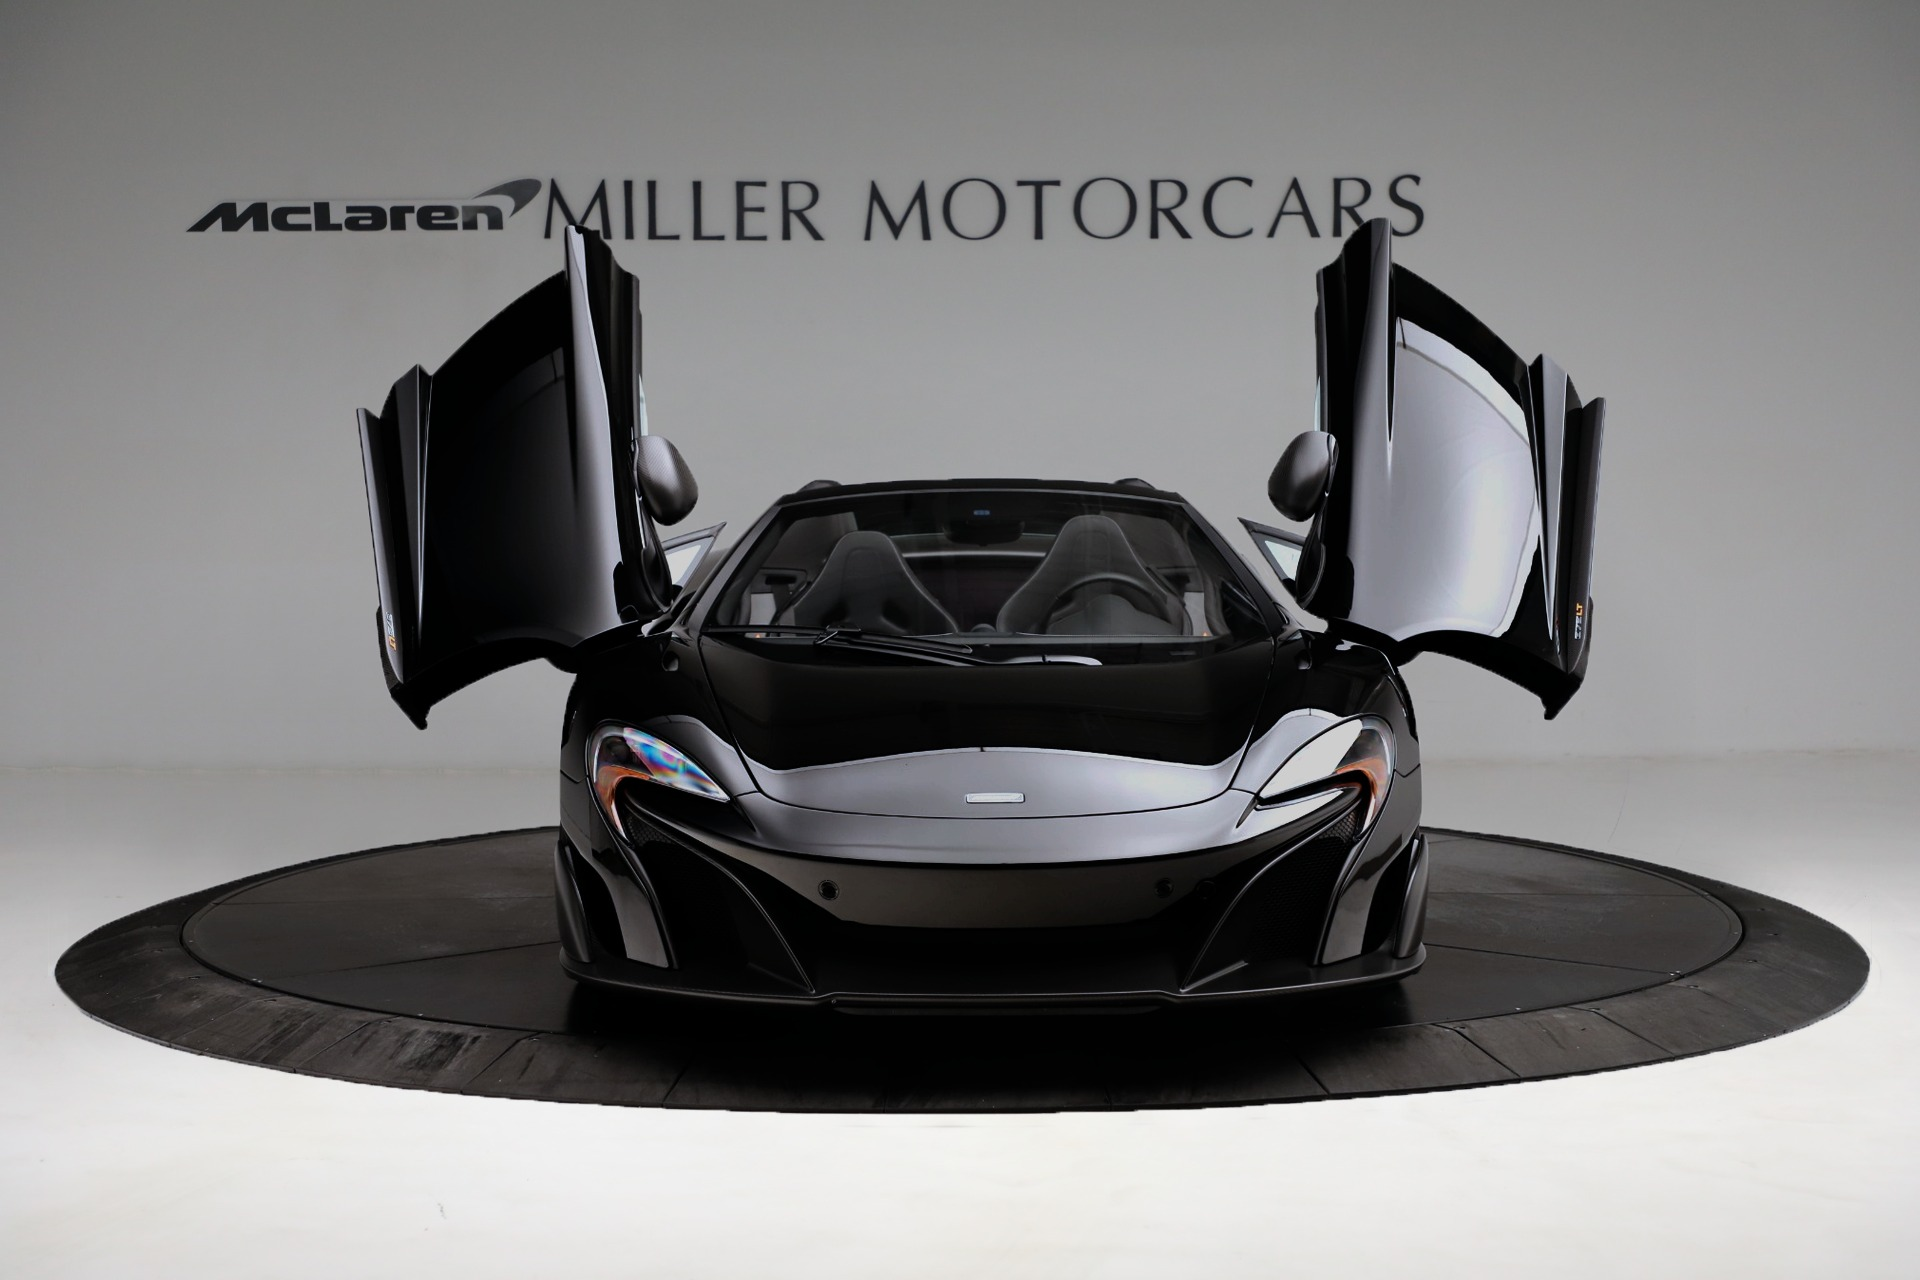 Used 2016 McLaren 675LT Spider For Sale In Westport, CT 3455_p19